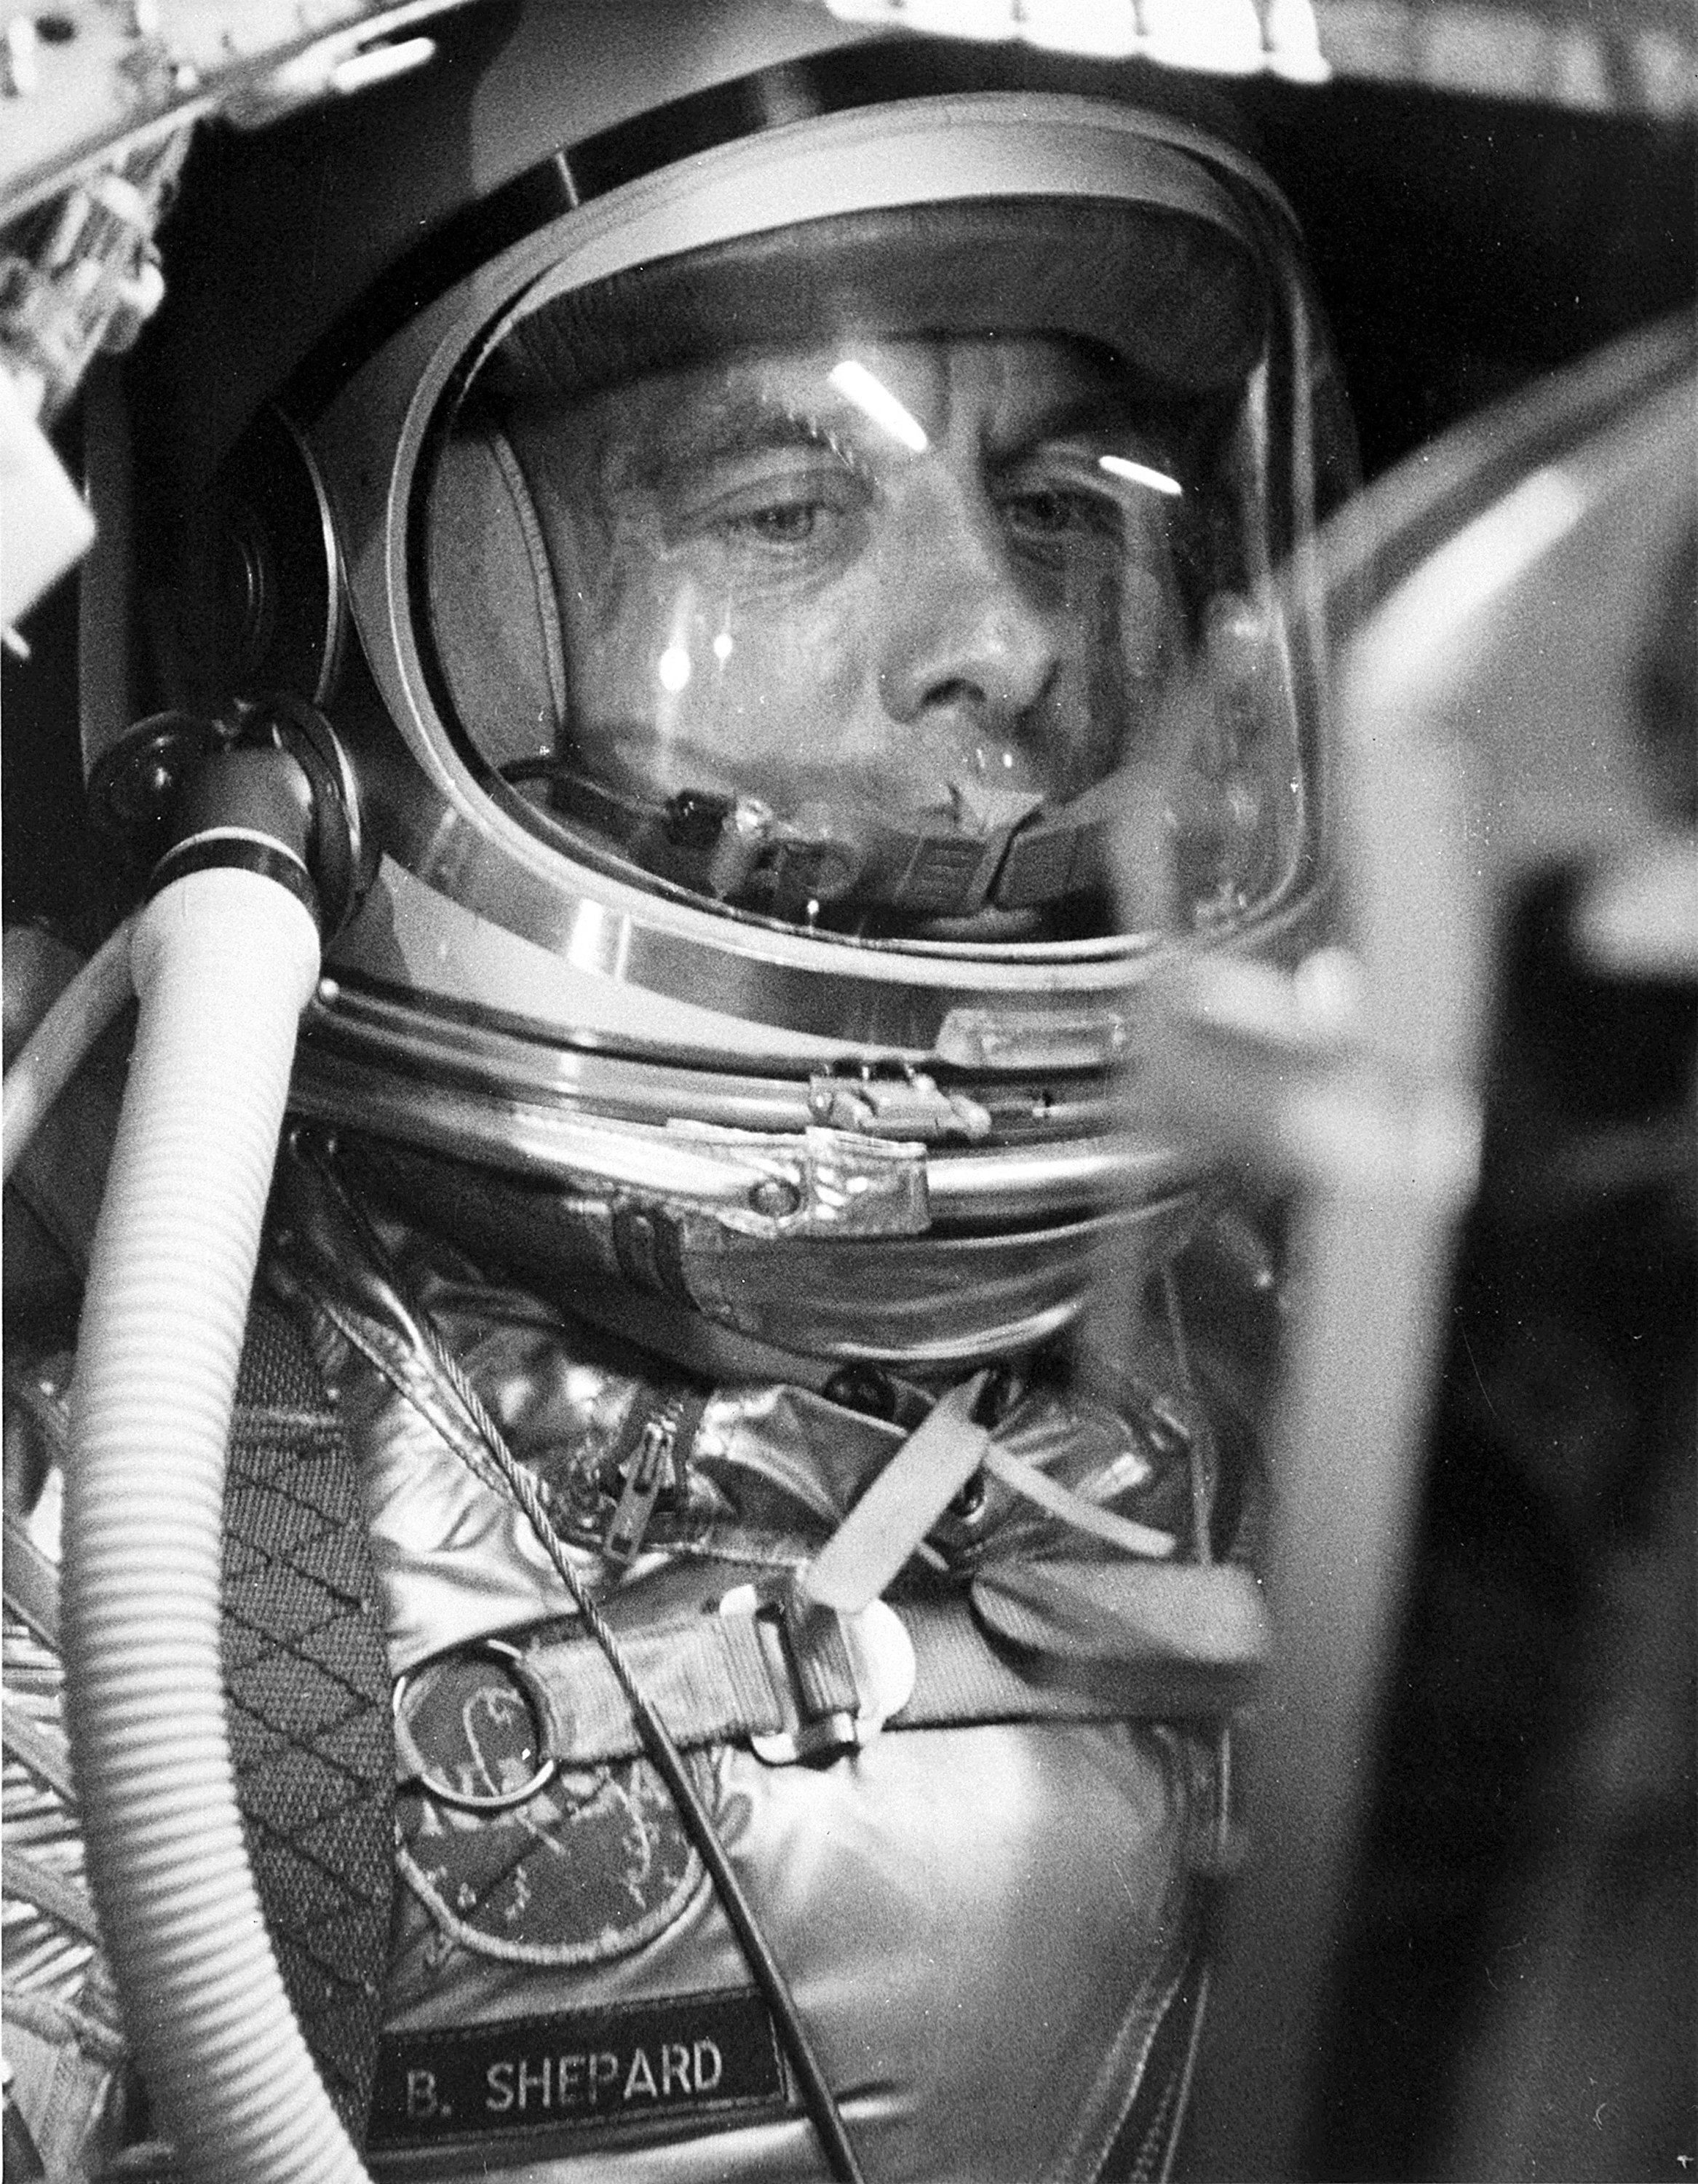 The first American cosmonaut Alan Shepard. Mission Mercury-Redstone-3 on May 5, 1961